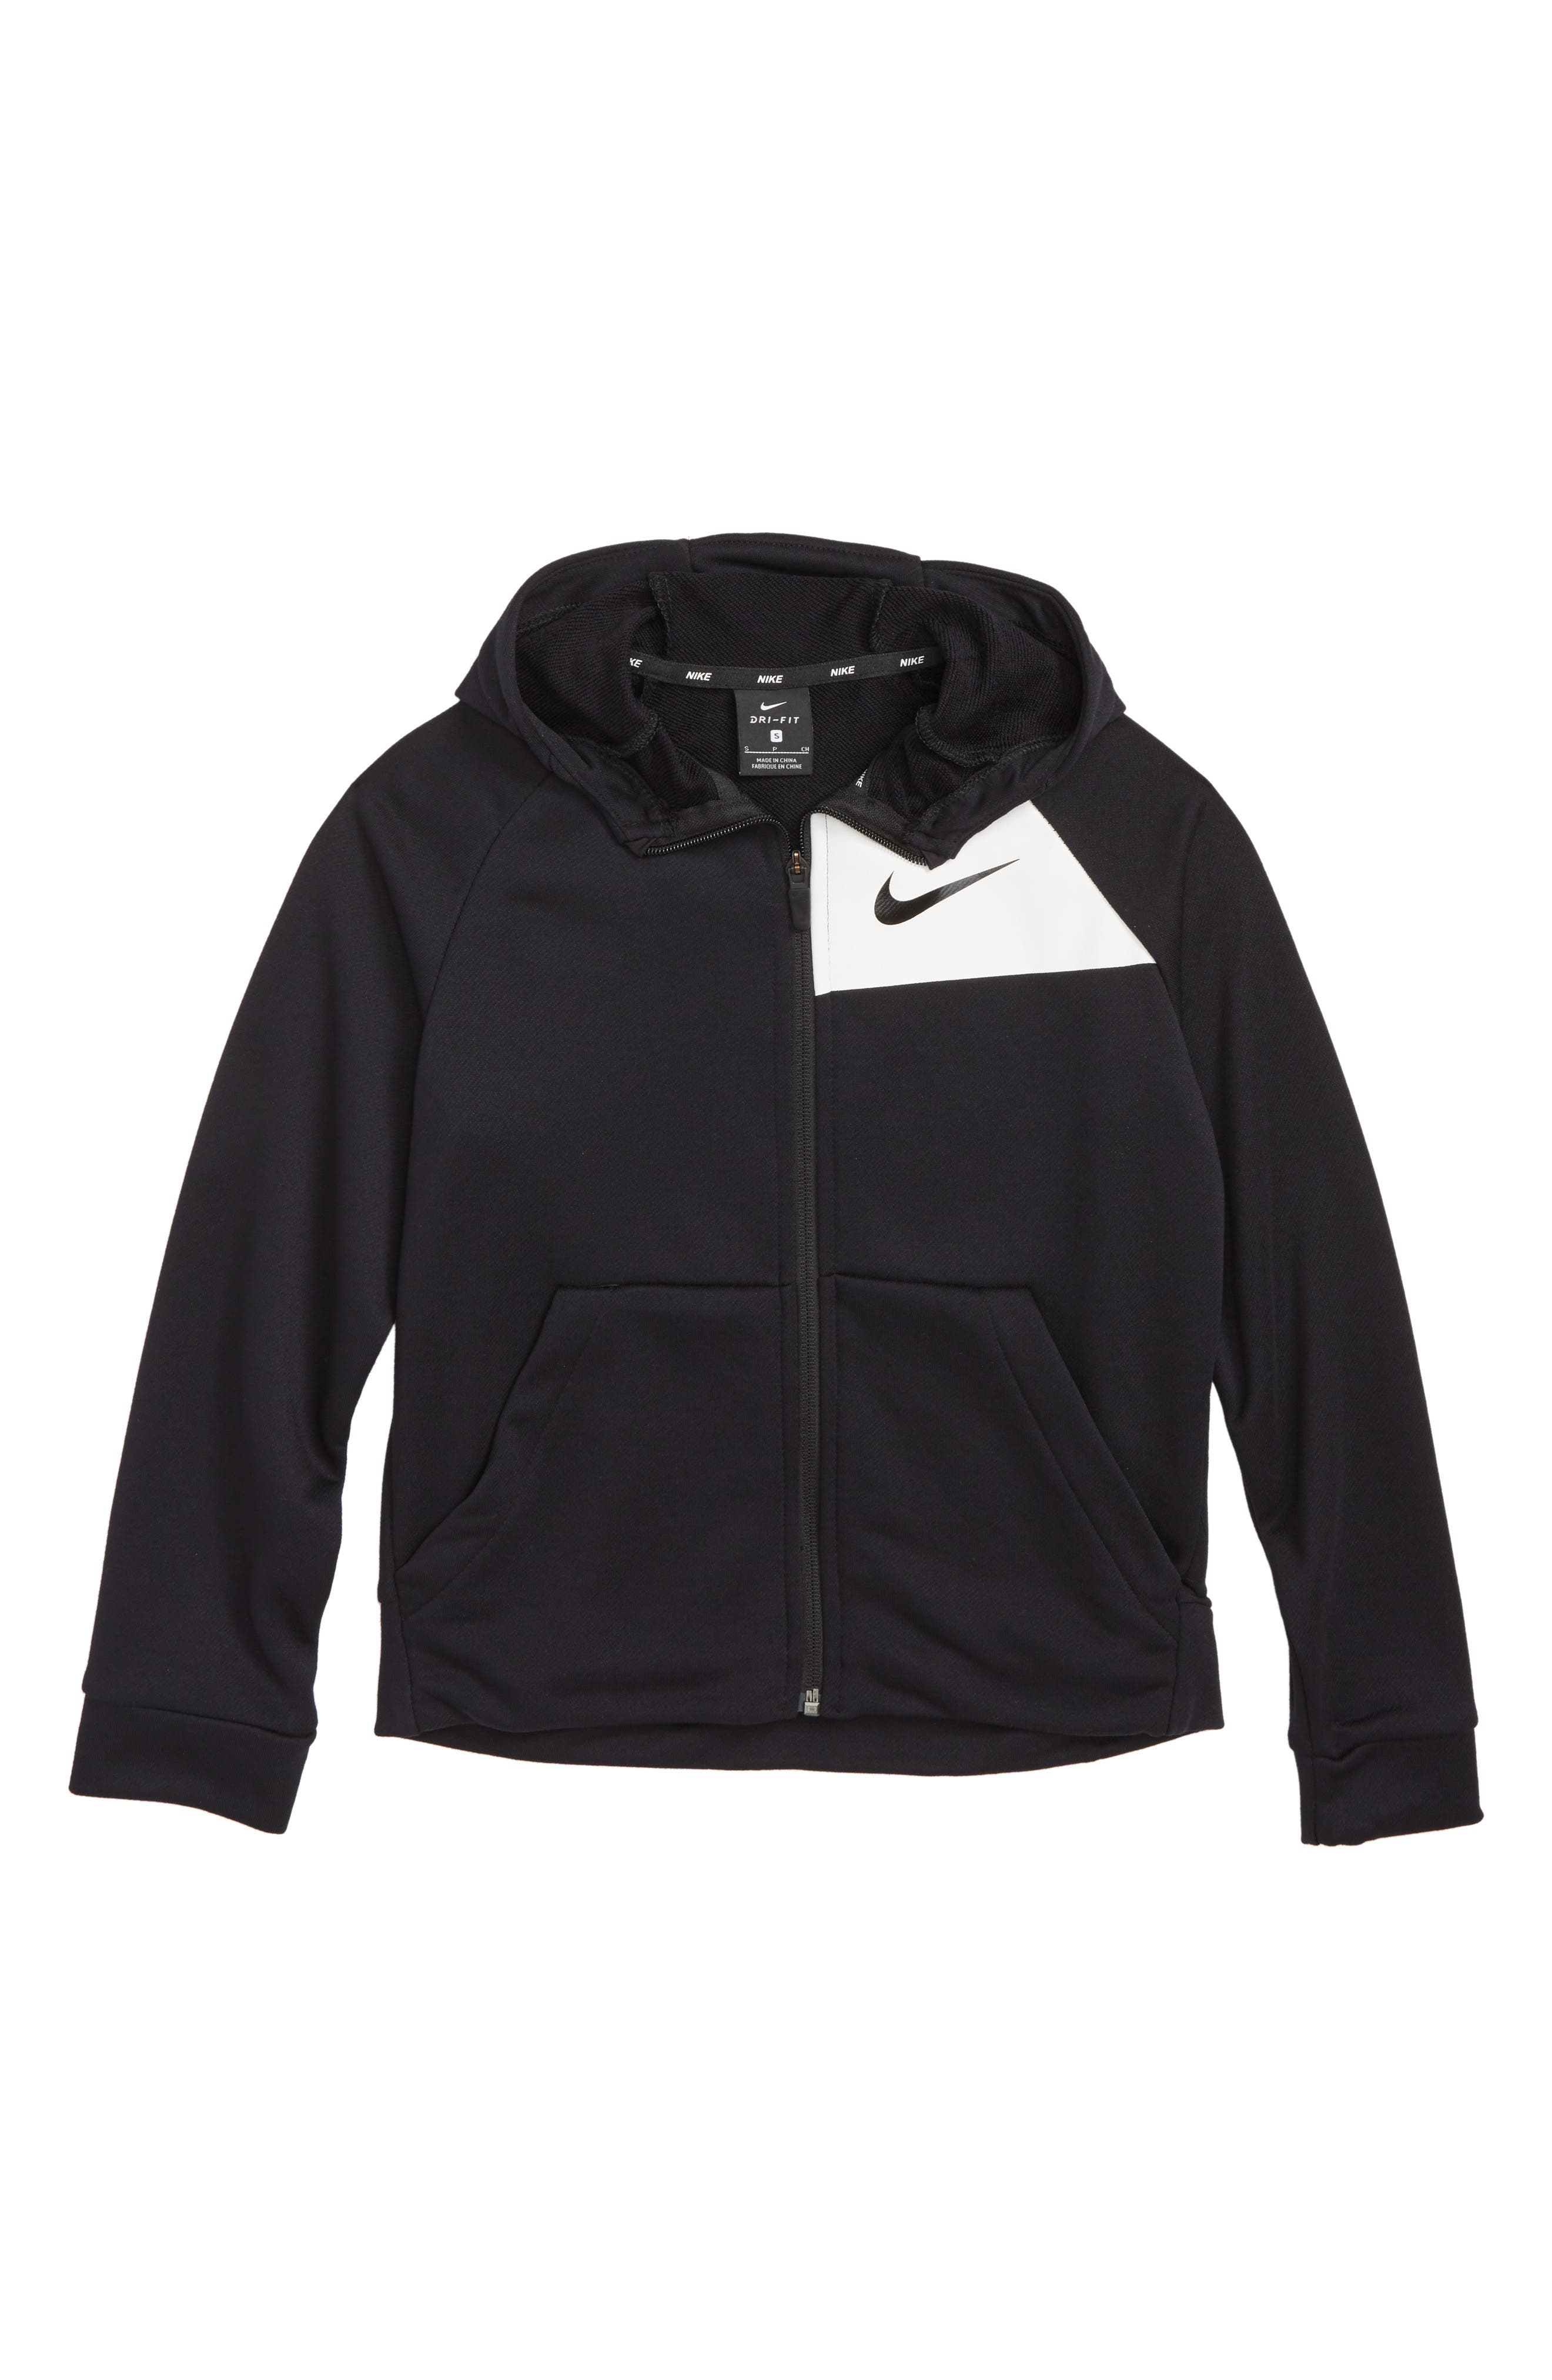 NIKE, Dry Full Zip Hoodie, Main thumbnail 1, color, BLACK/ WHITE